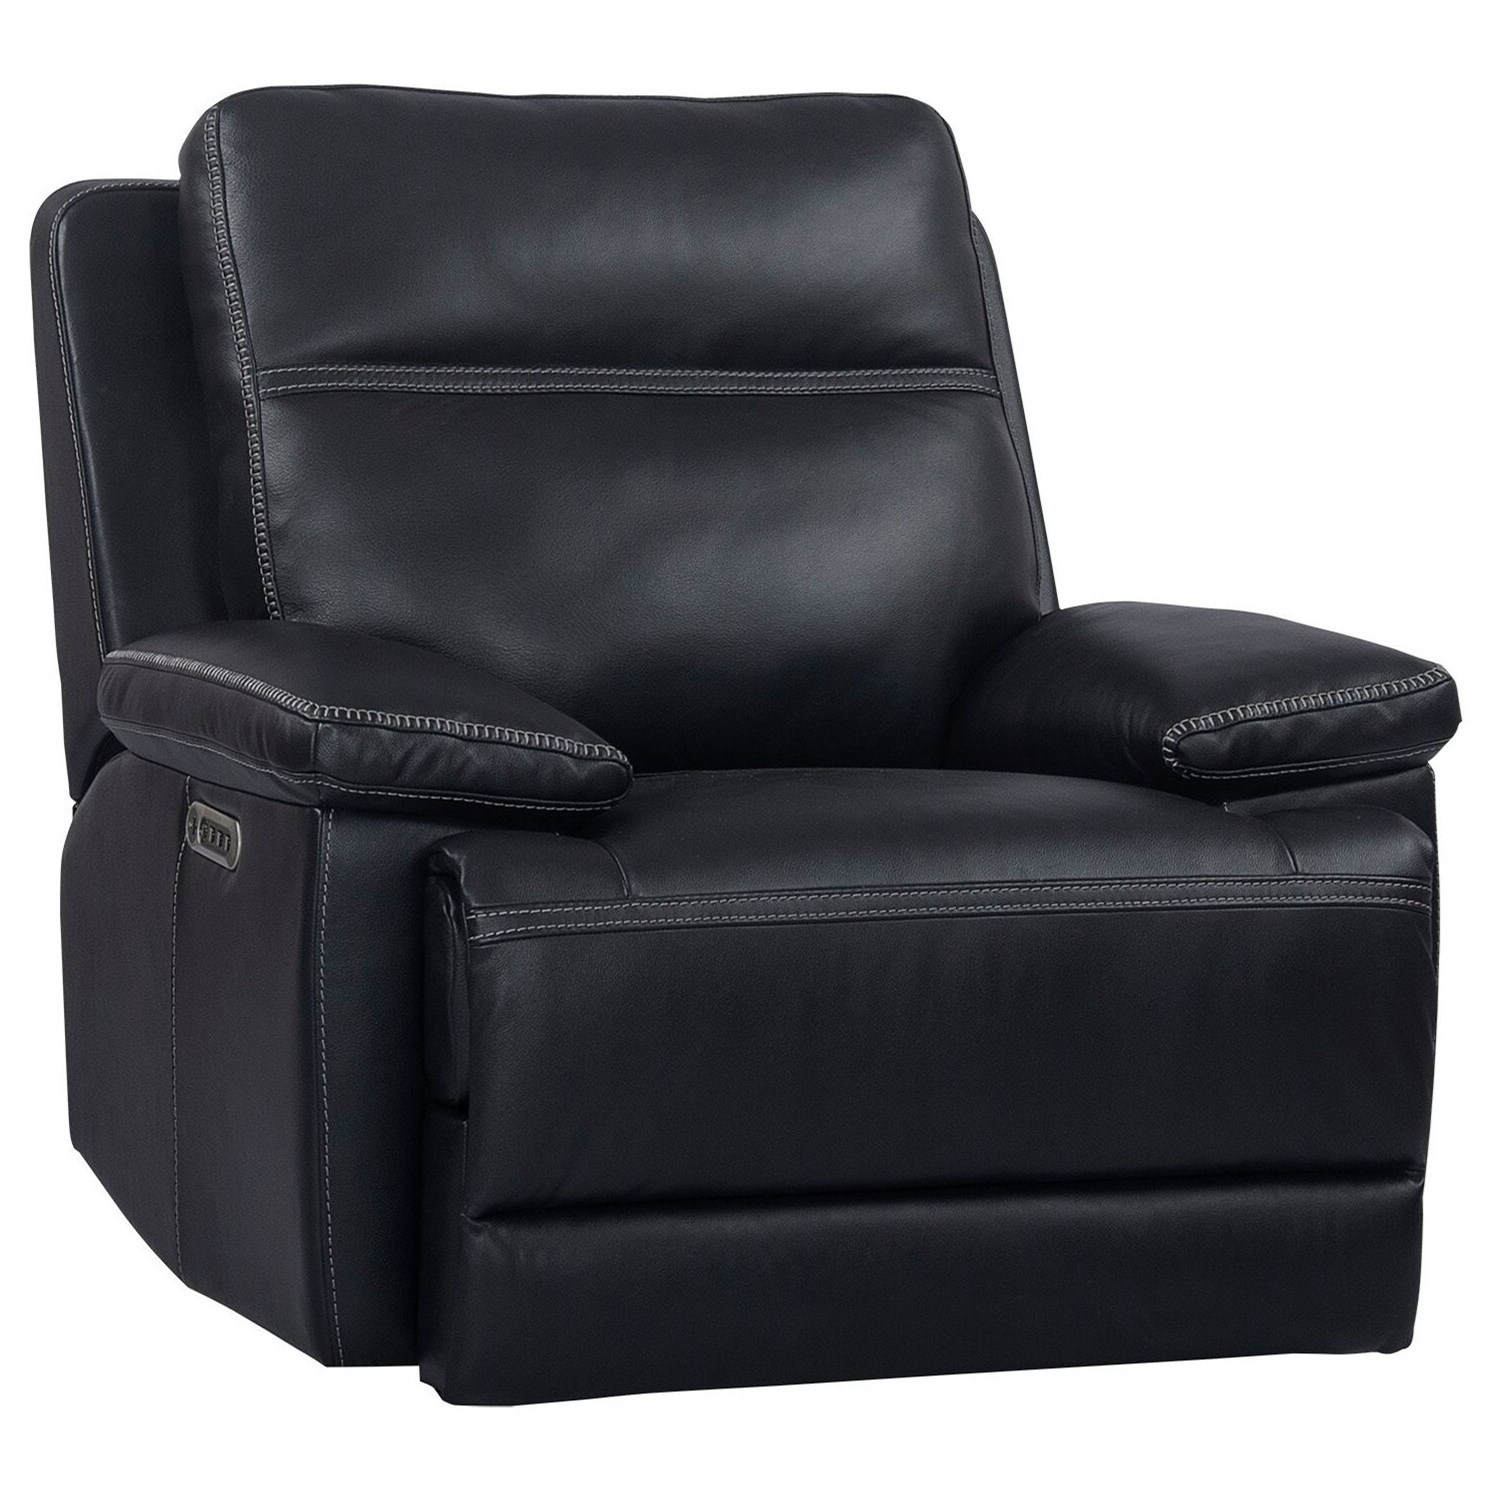 Paxton Power Recliner with Adjustable Headrest by Parker Living at Zak's Home